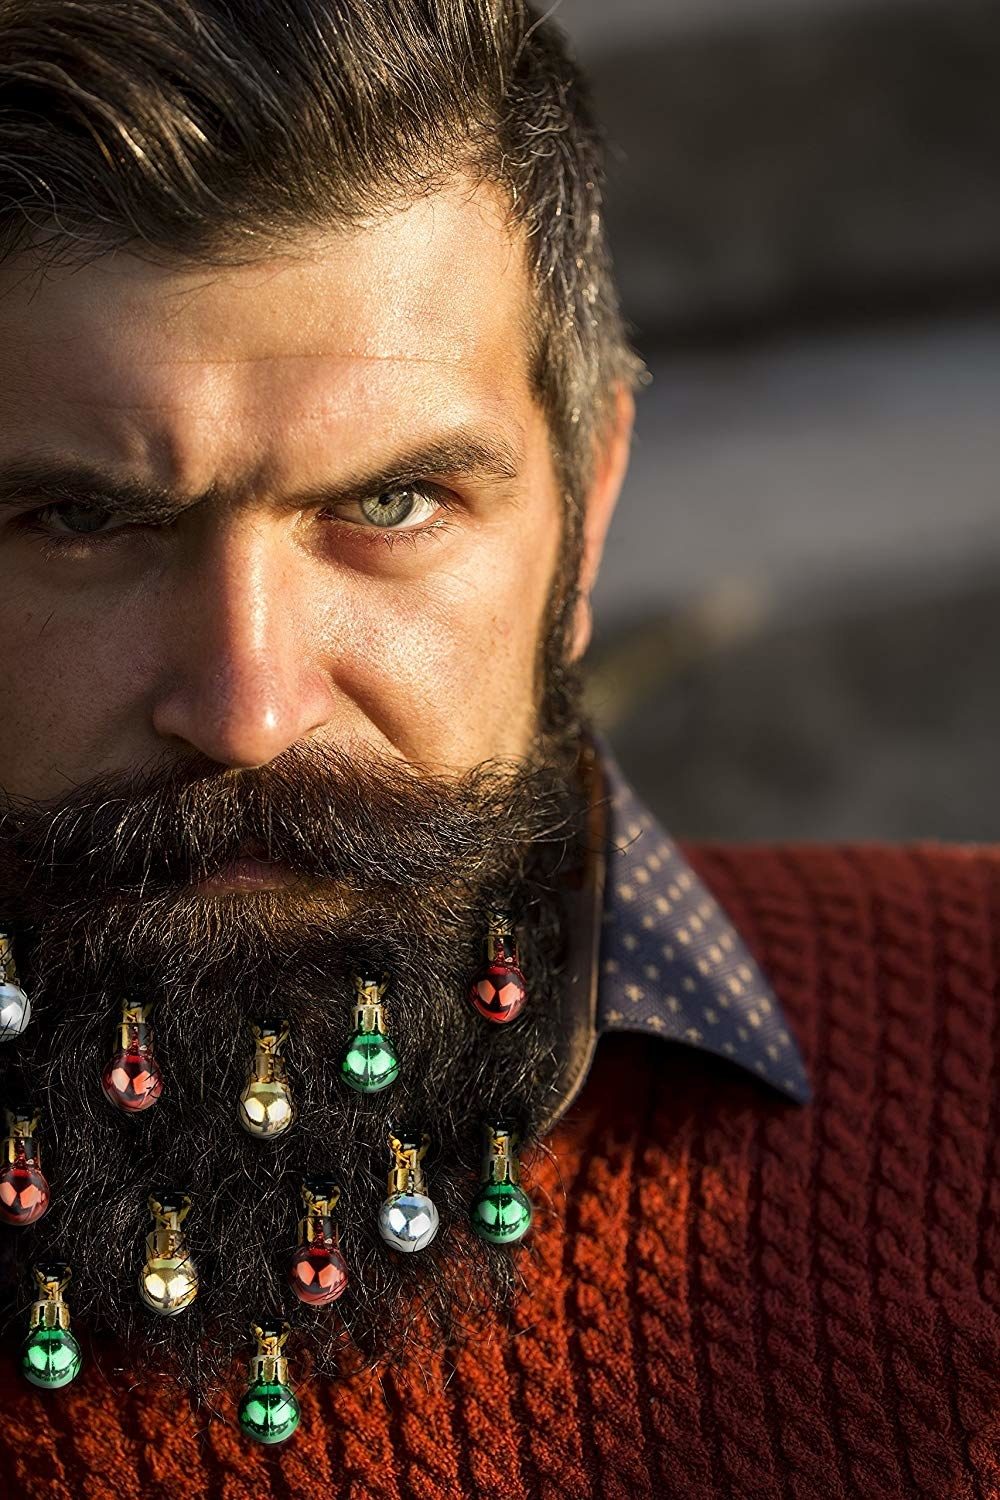 model with small baubles in beard